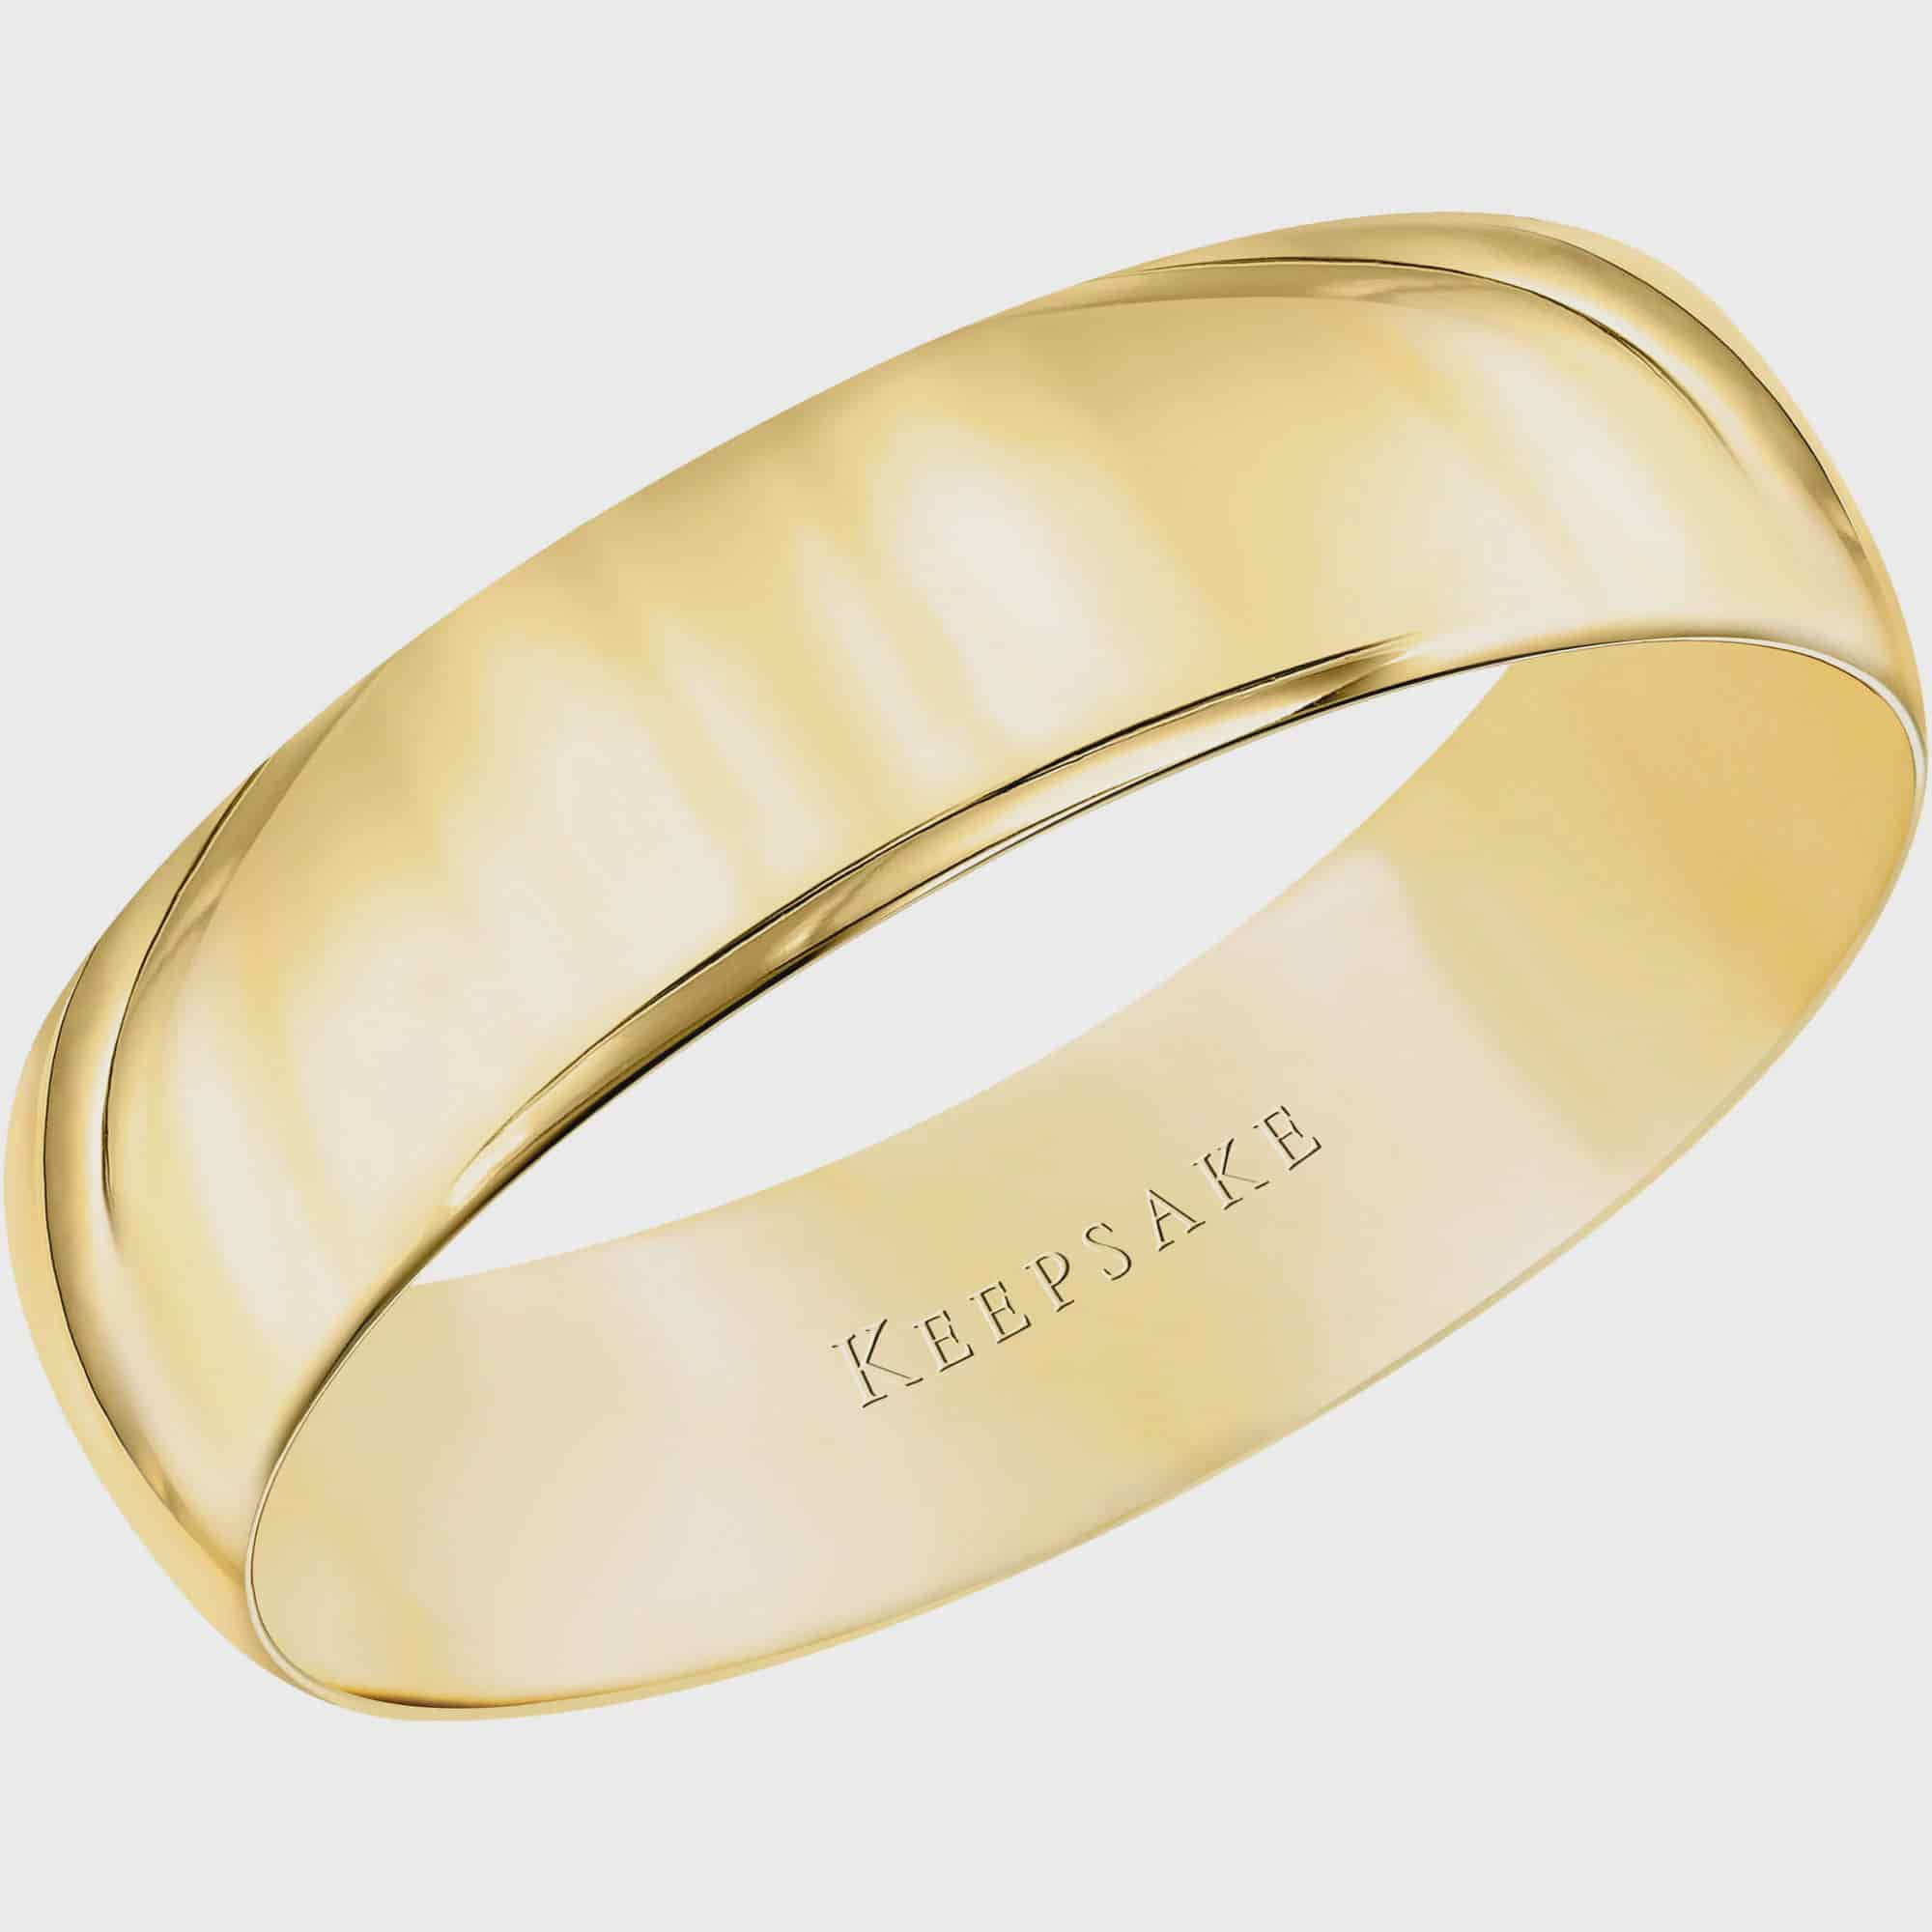 Keepsake Men S 10kt Yellow Gold Wedding Band With High Polish Finish 5mm